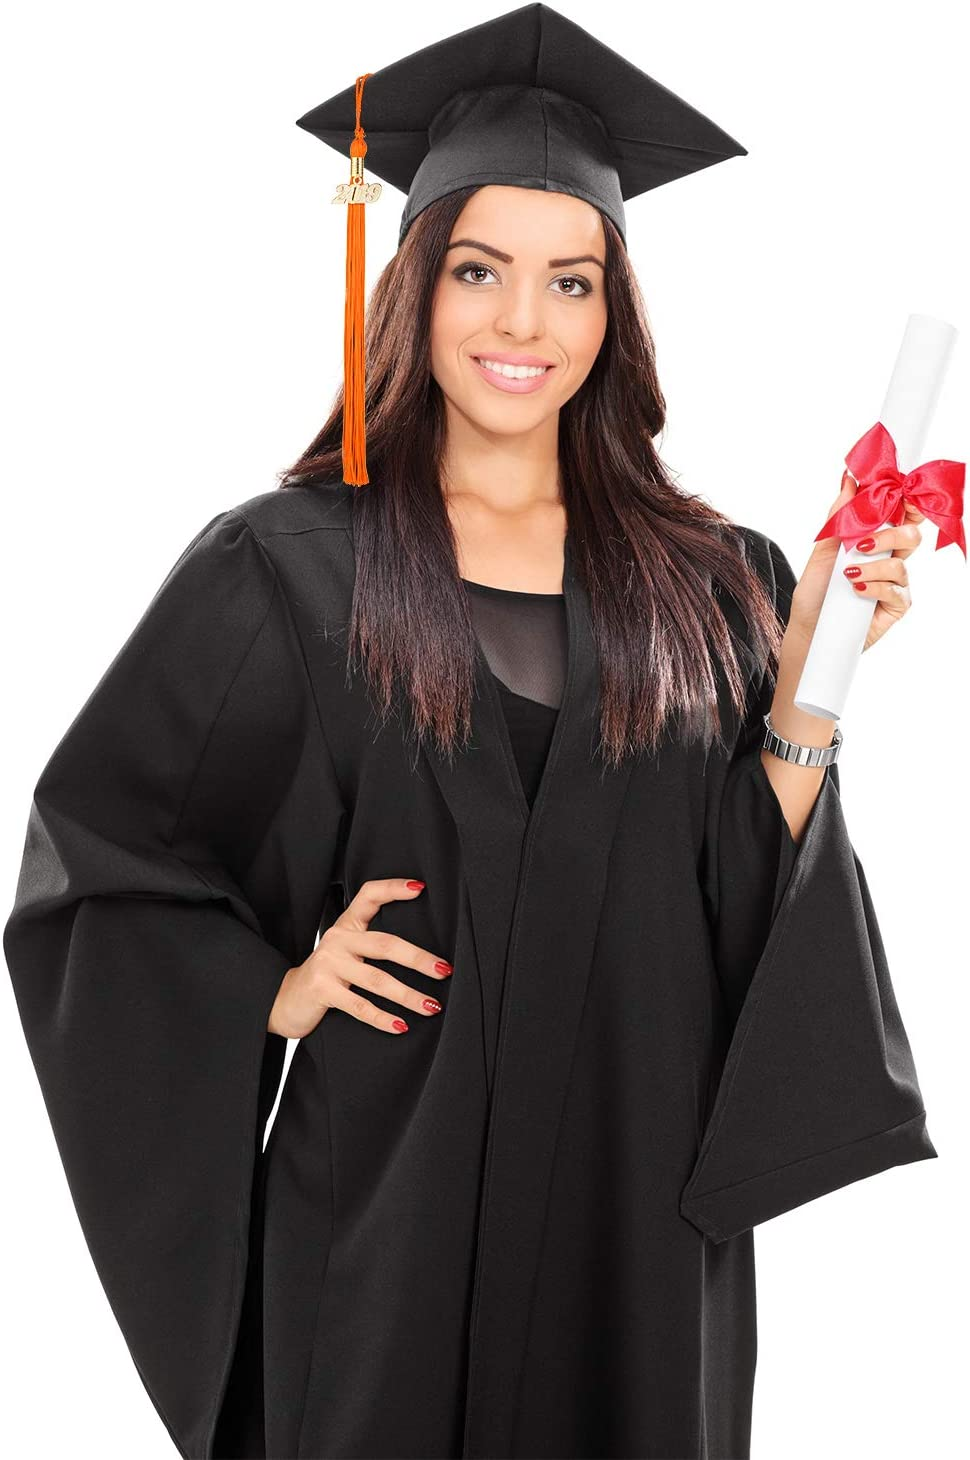 9.4 Inches Yaomiao 8 Pieces Graduation Tassel Graduation Cap Tassel with 2019 Year Charm for Graduation Parties Gold